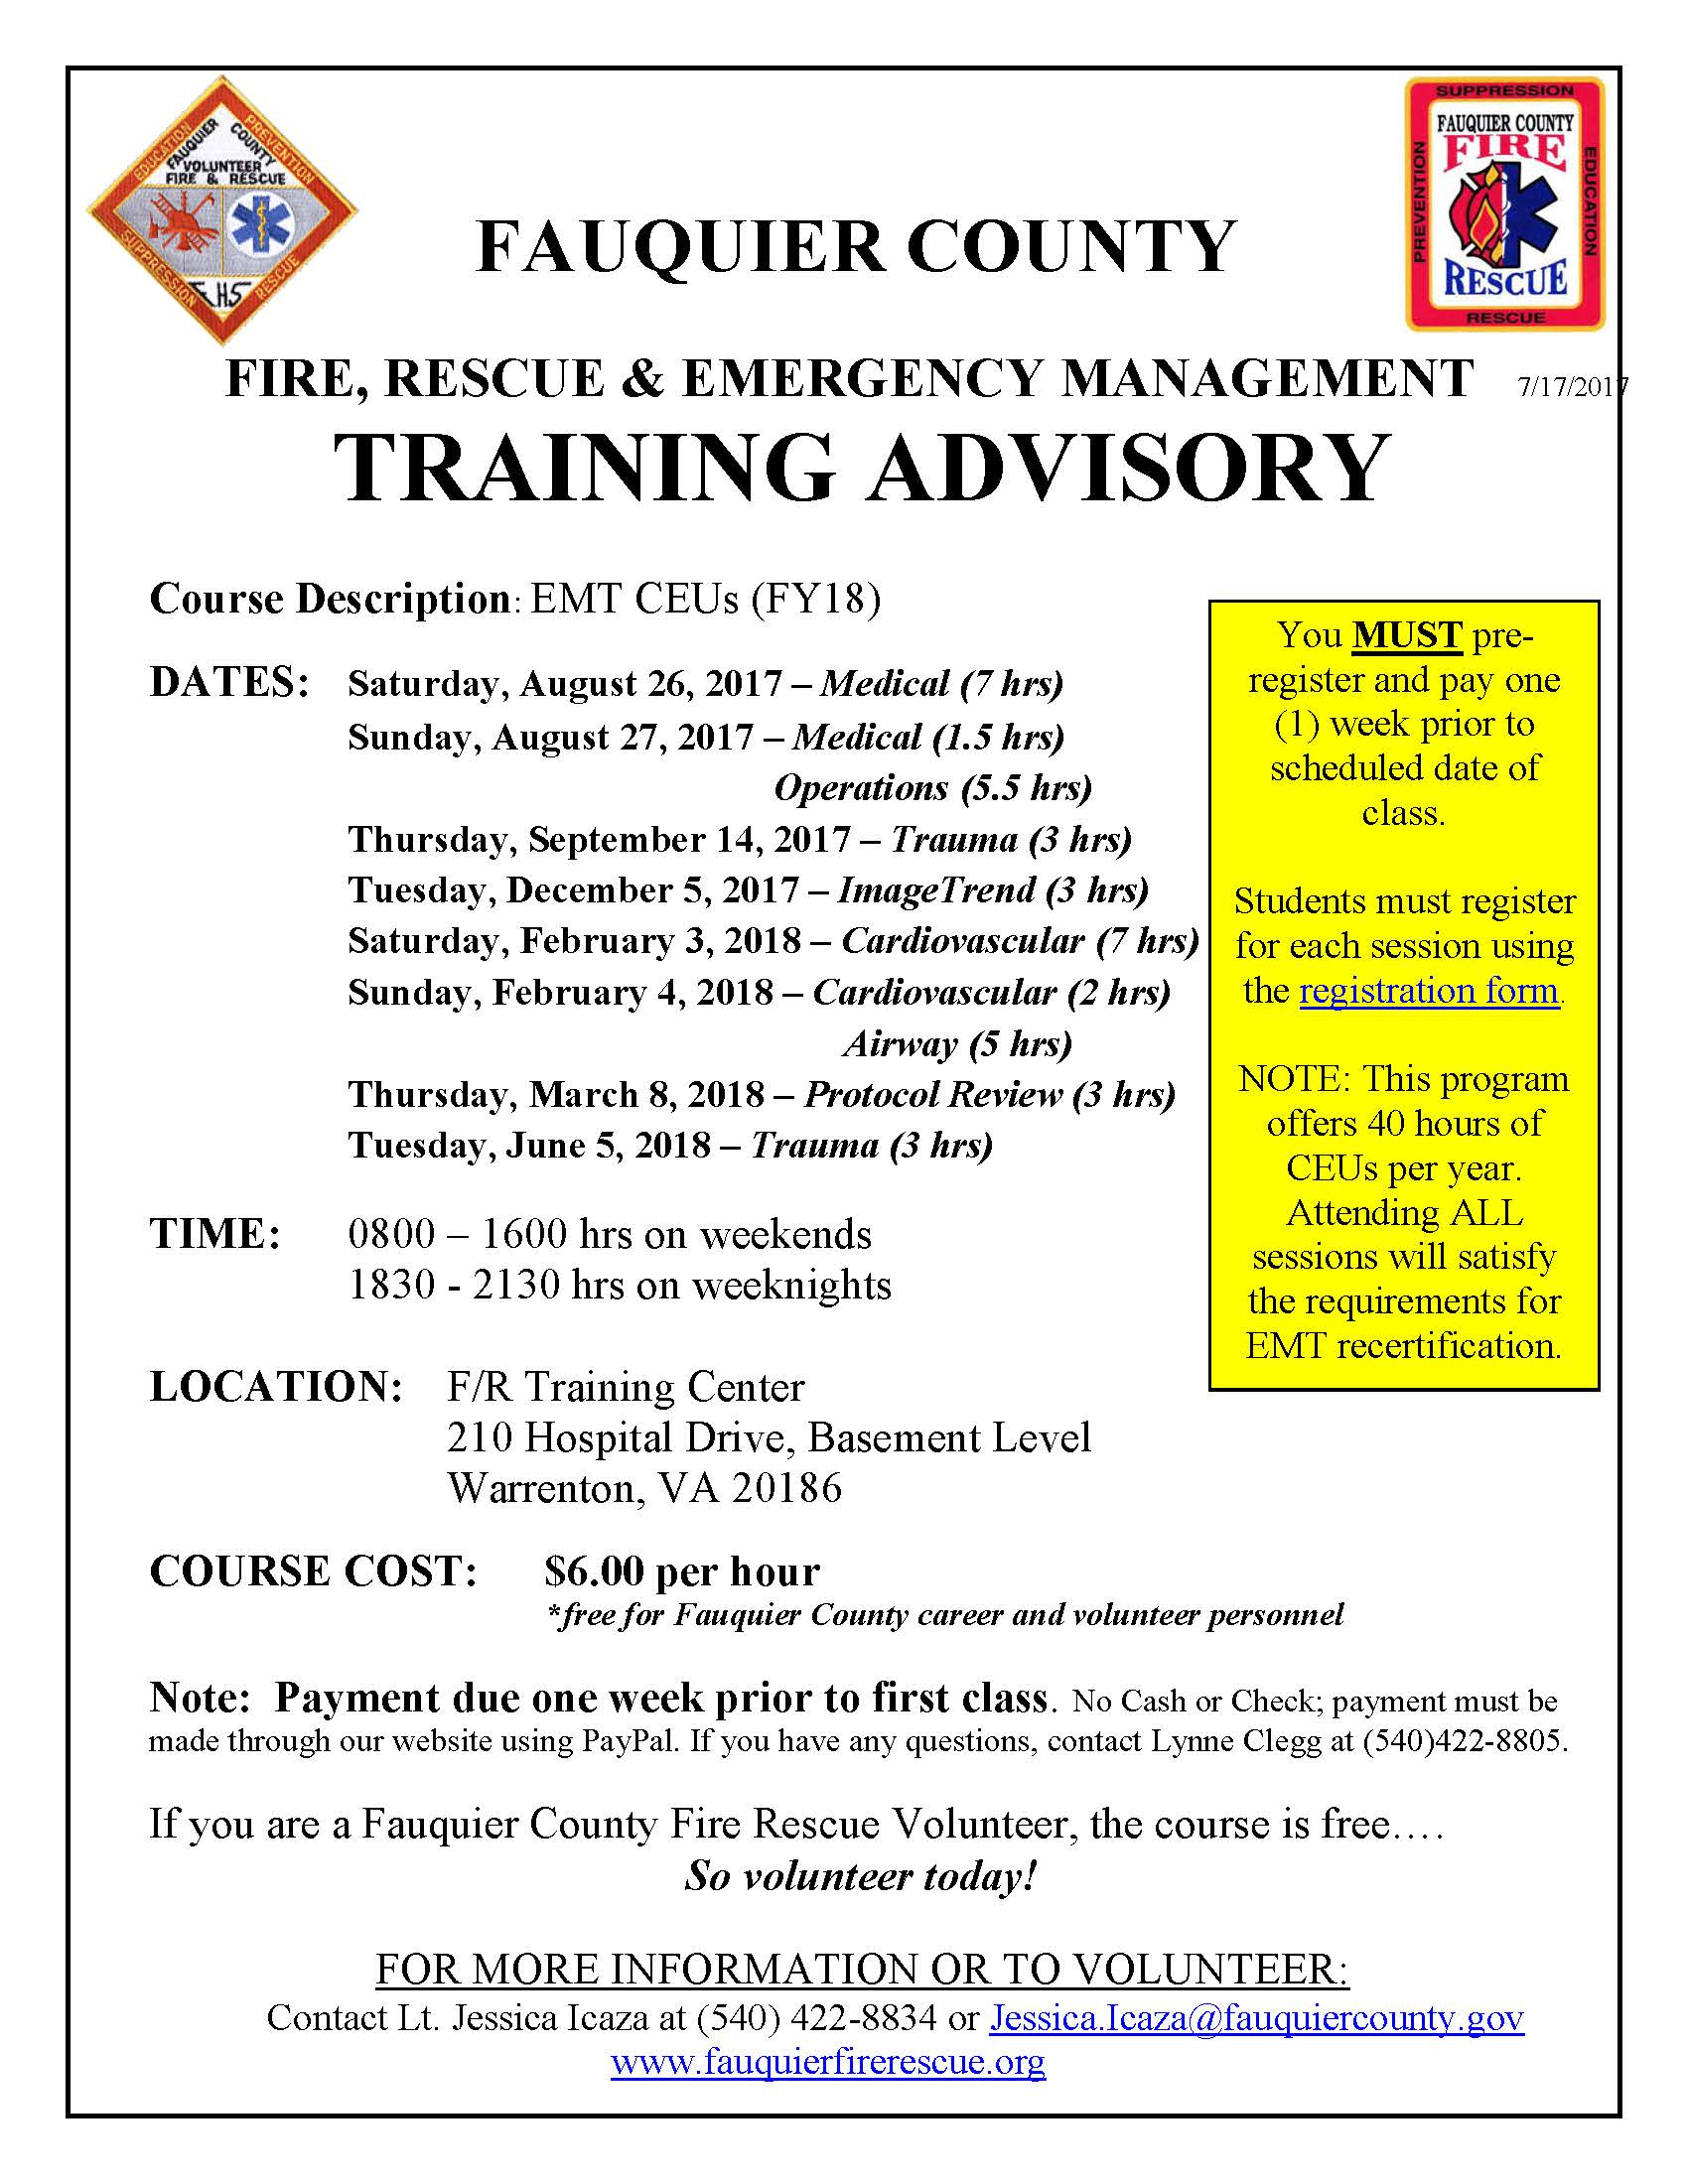 Fauquier county fire rescue fauquier ems training note attending all sessions within a one year time period will satisfy the requirements for emt recertification 40 hours 1betcityfo Gallery